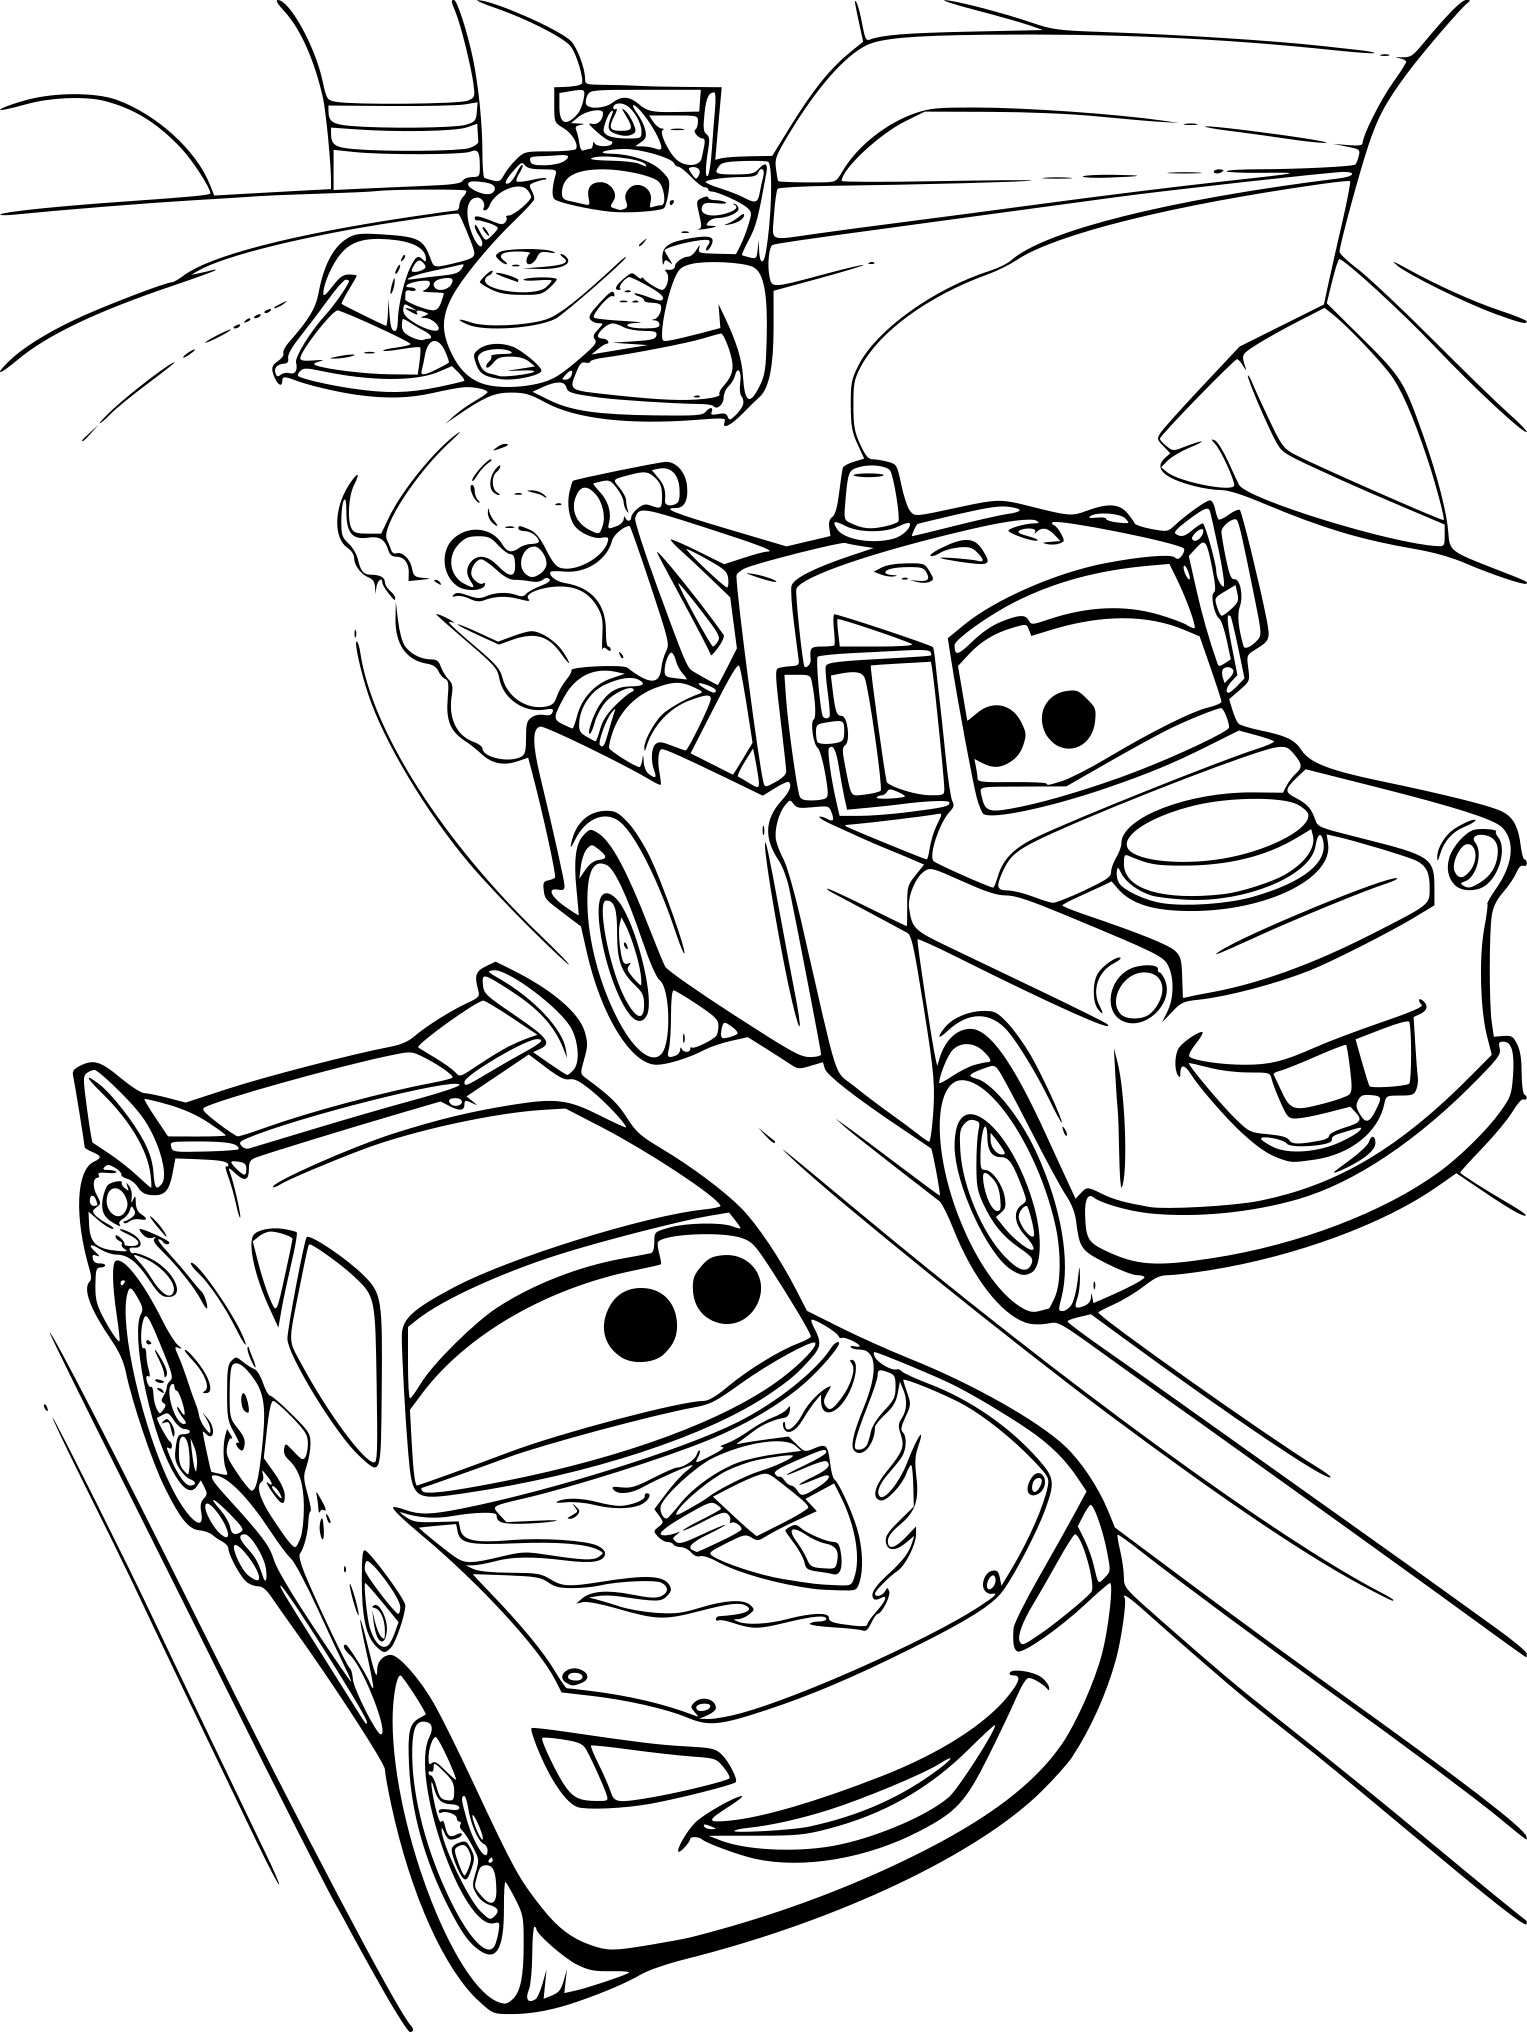 Coloriage A Imprimer Mcqueen.23 Mcqueen Coloring Pages Selection Free Coloring Pages